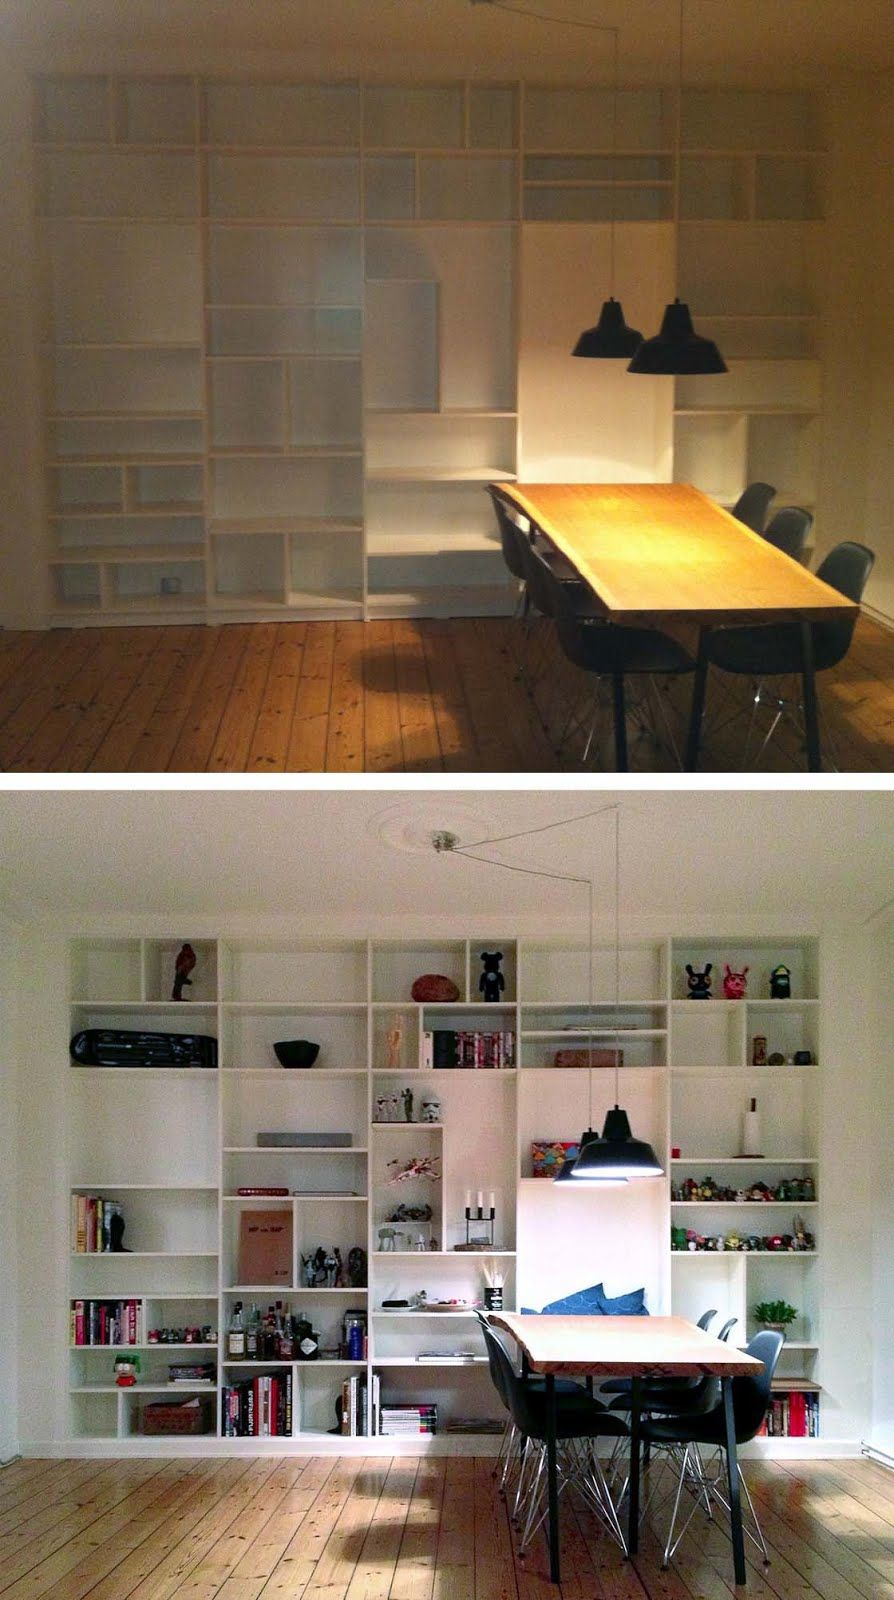 Ikea Hack Bookcase: DIY Projects & Tips